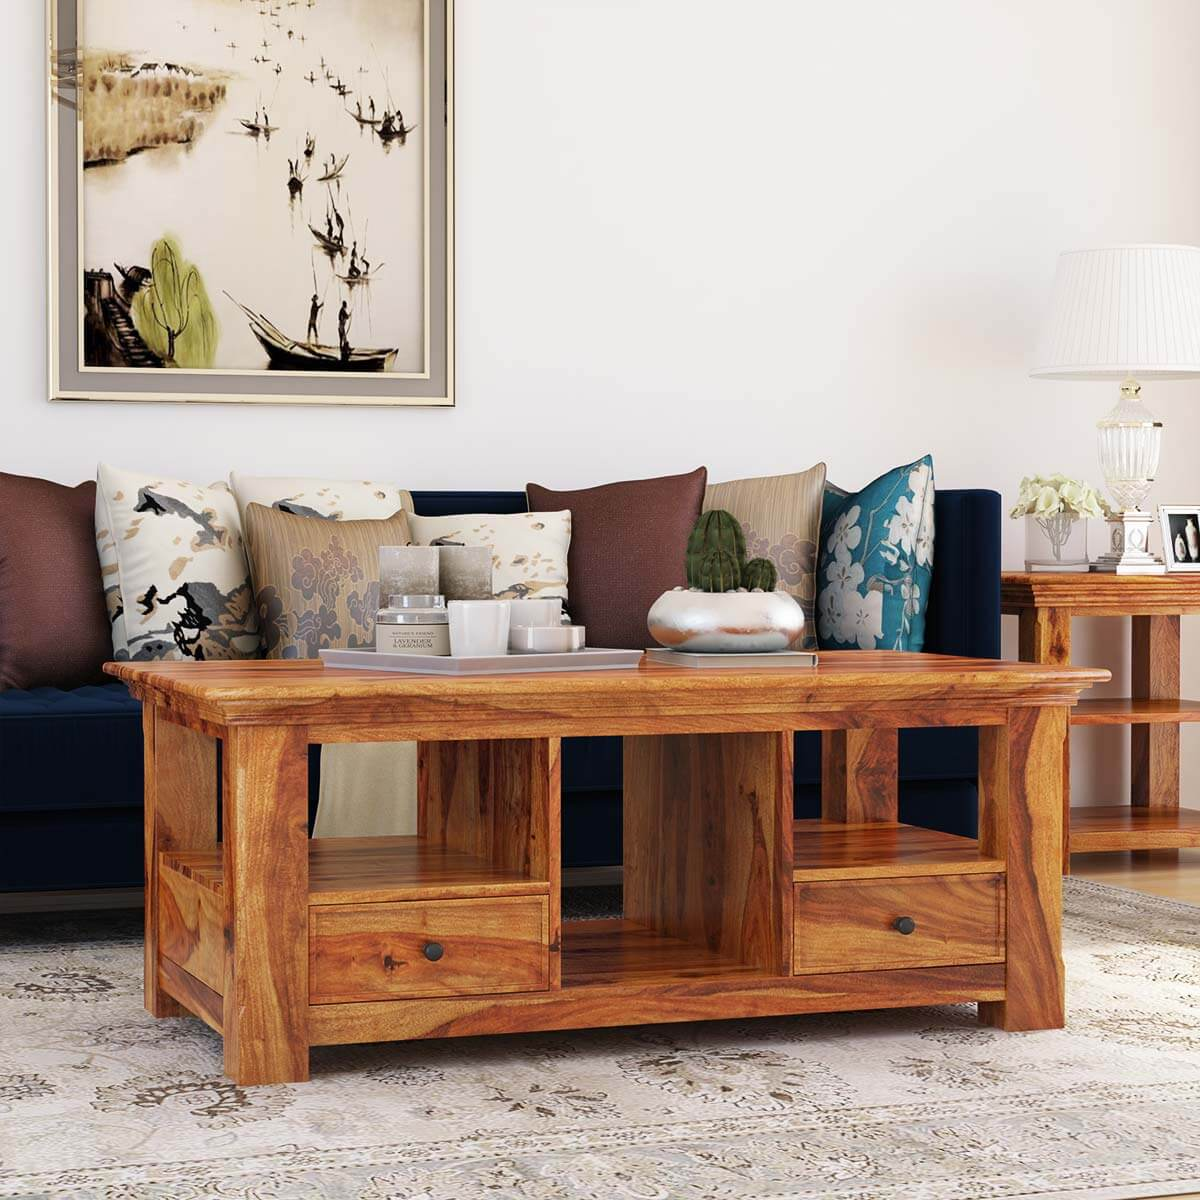 Priscus Midcentury Modern Style Solid Wood Rustic Coffee Table